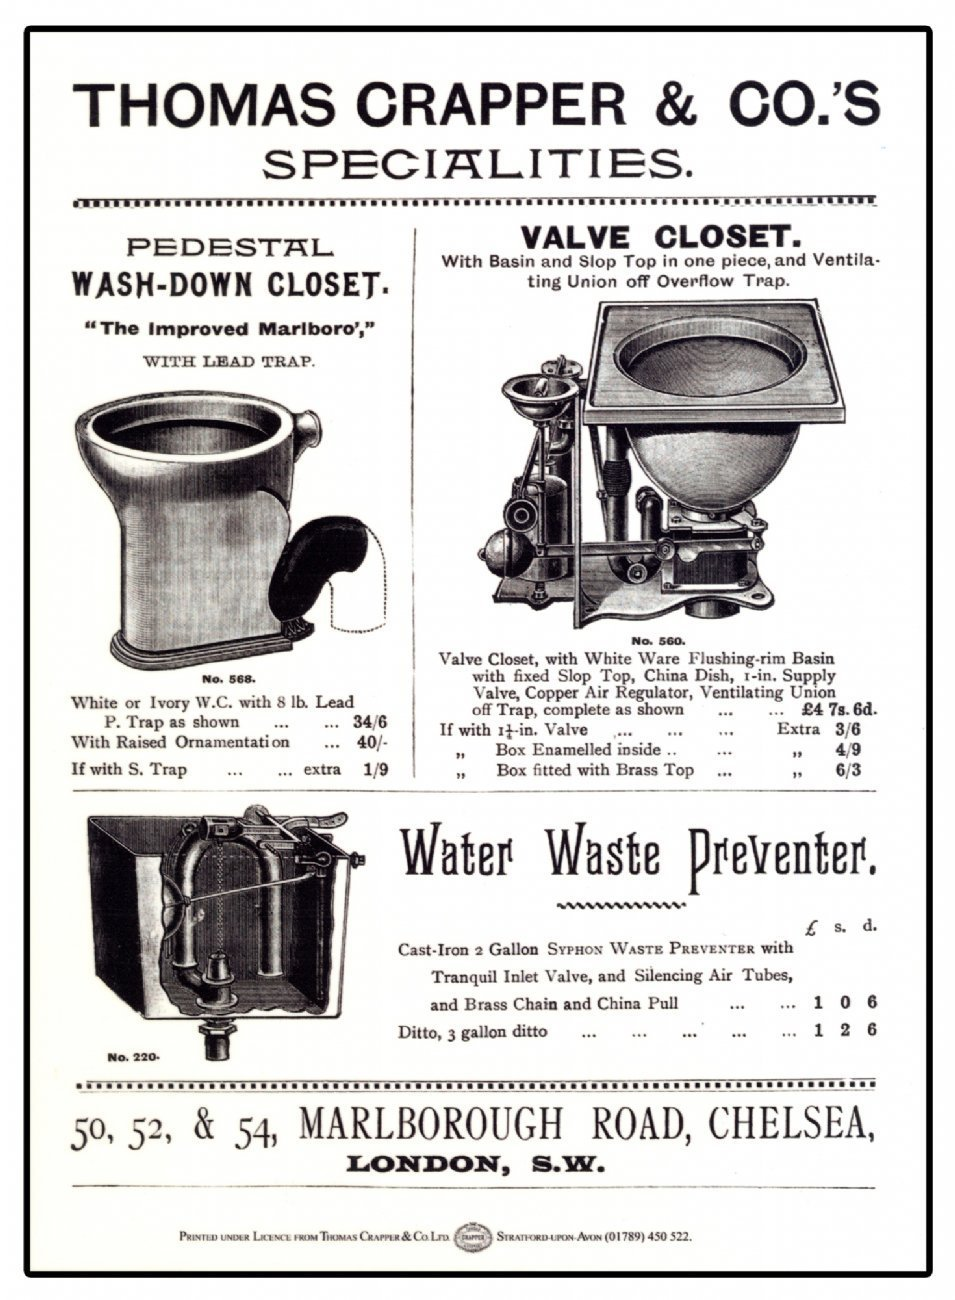 thomas crapper In the ancient orient, a sensible system developed whereby waste was collected on traveling carts, then brought to dung heaps for decomposition, in the west, chamber pots were simply ' dumped in the streets, creating serious health hazards, until the renowned thomas crapper invented the flush water closet in victorian england.